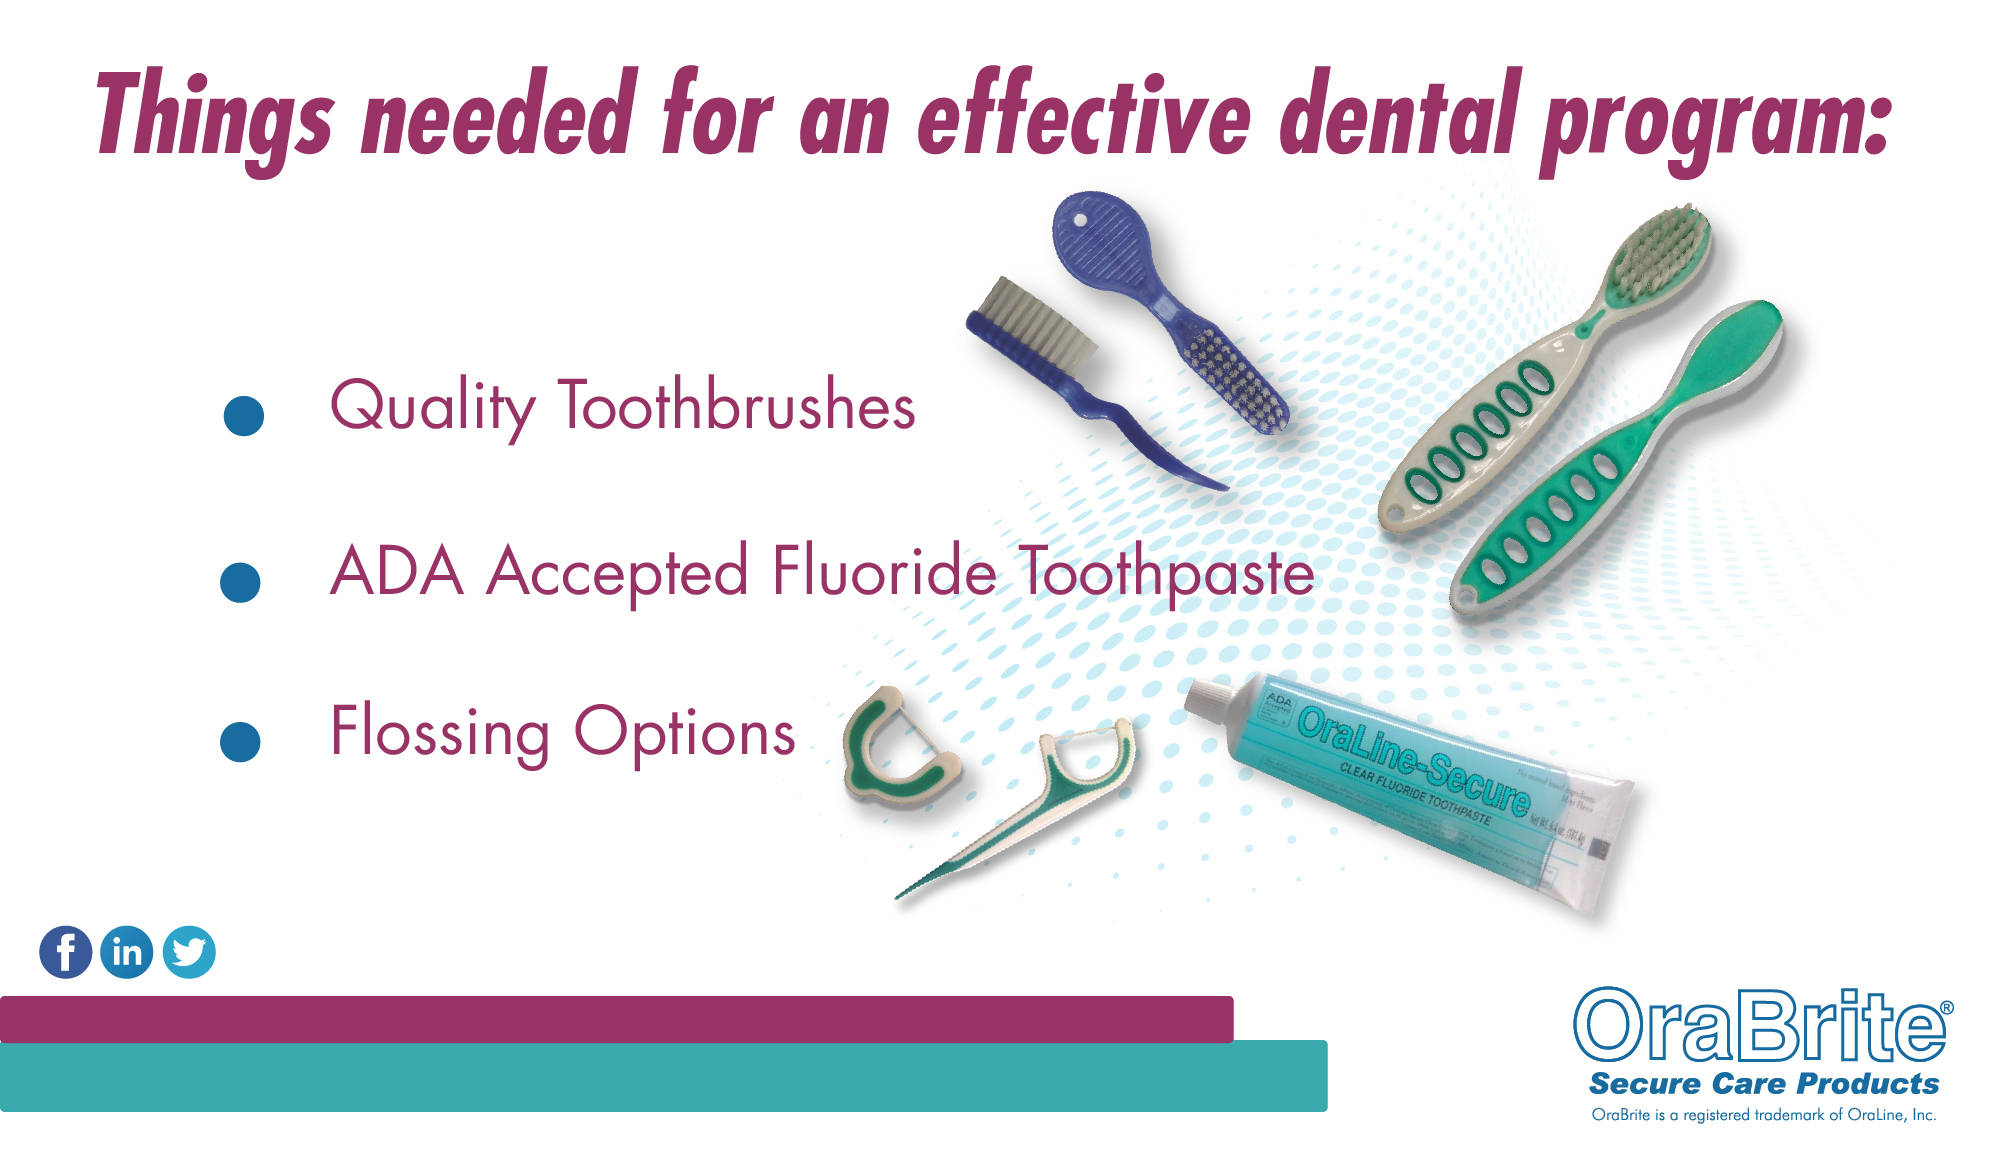 Things needed for an effective dental program